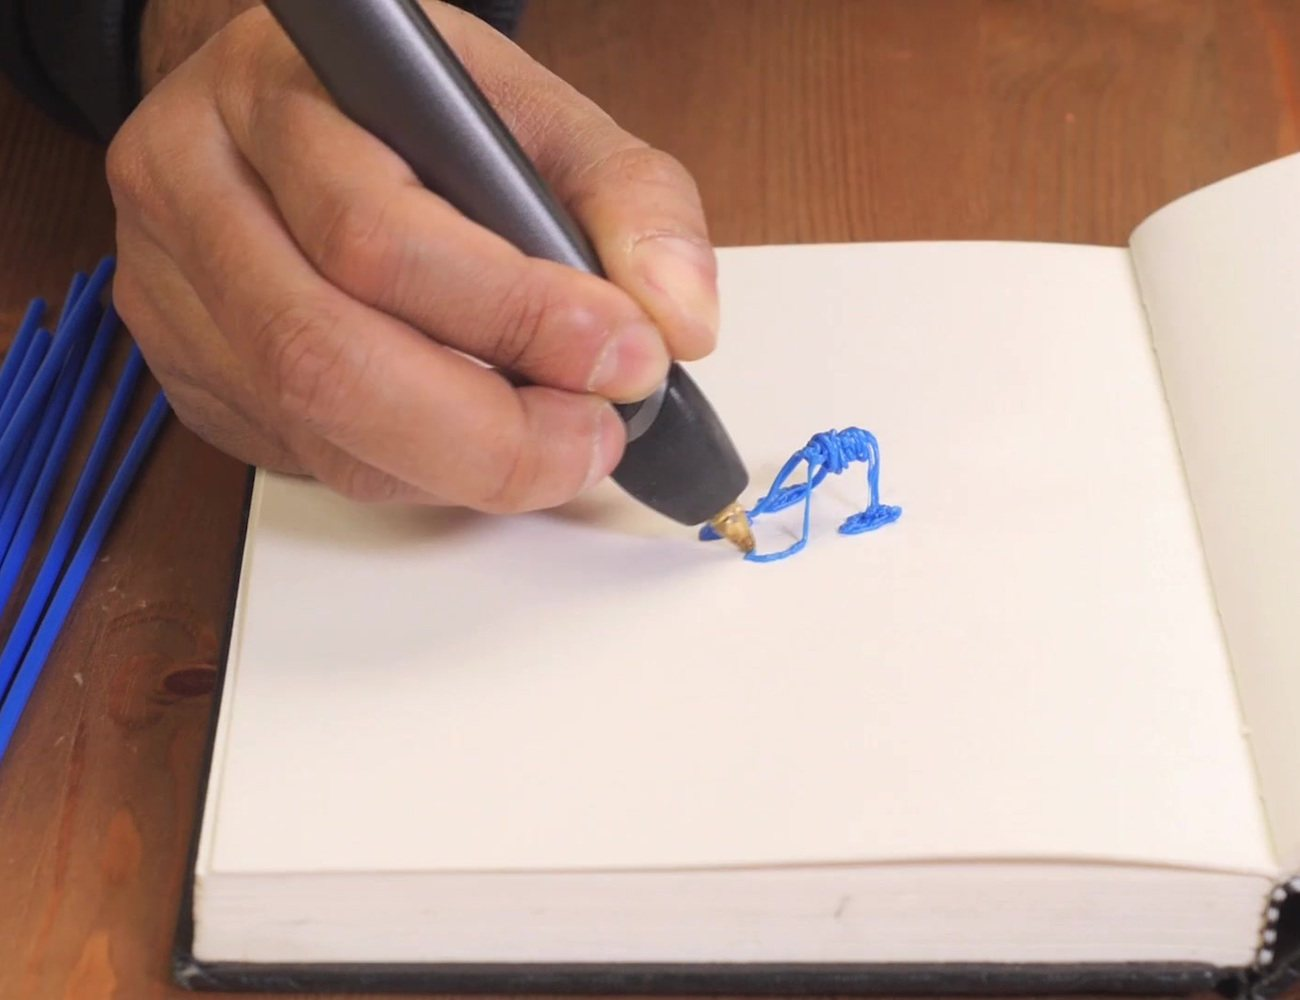 3Doodler 2.0 – The 3D Printing Pen Goes 75% Smaller and 50% Lighter